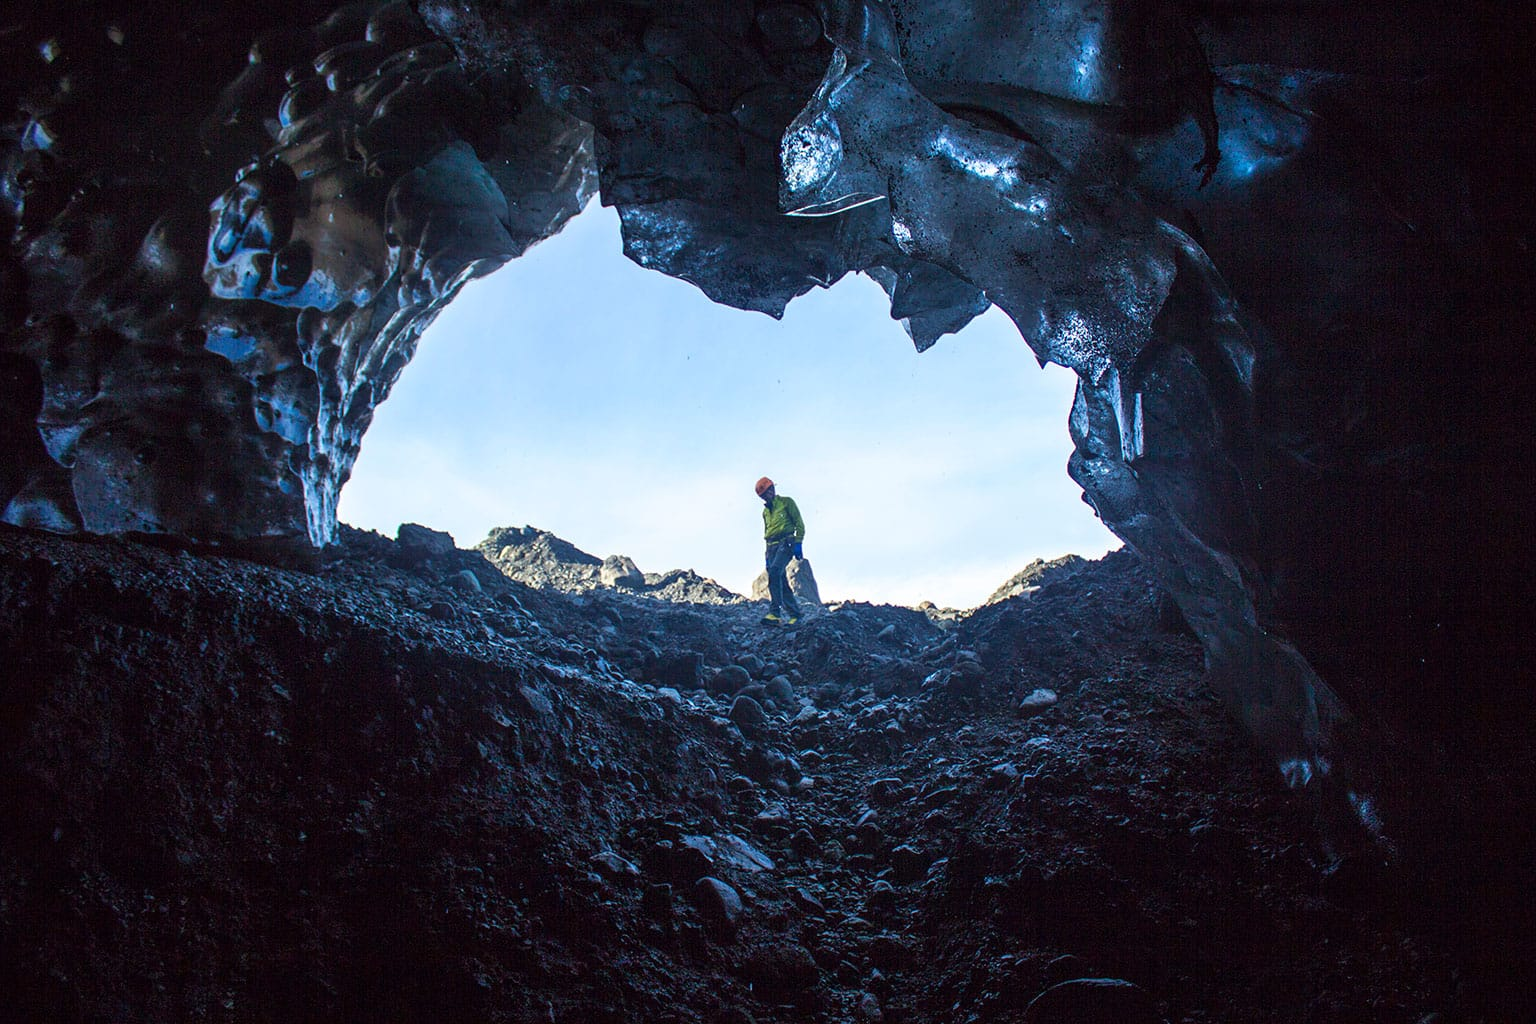 In the mouth of the cave